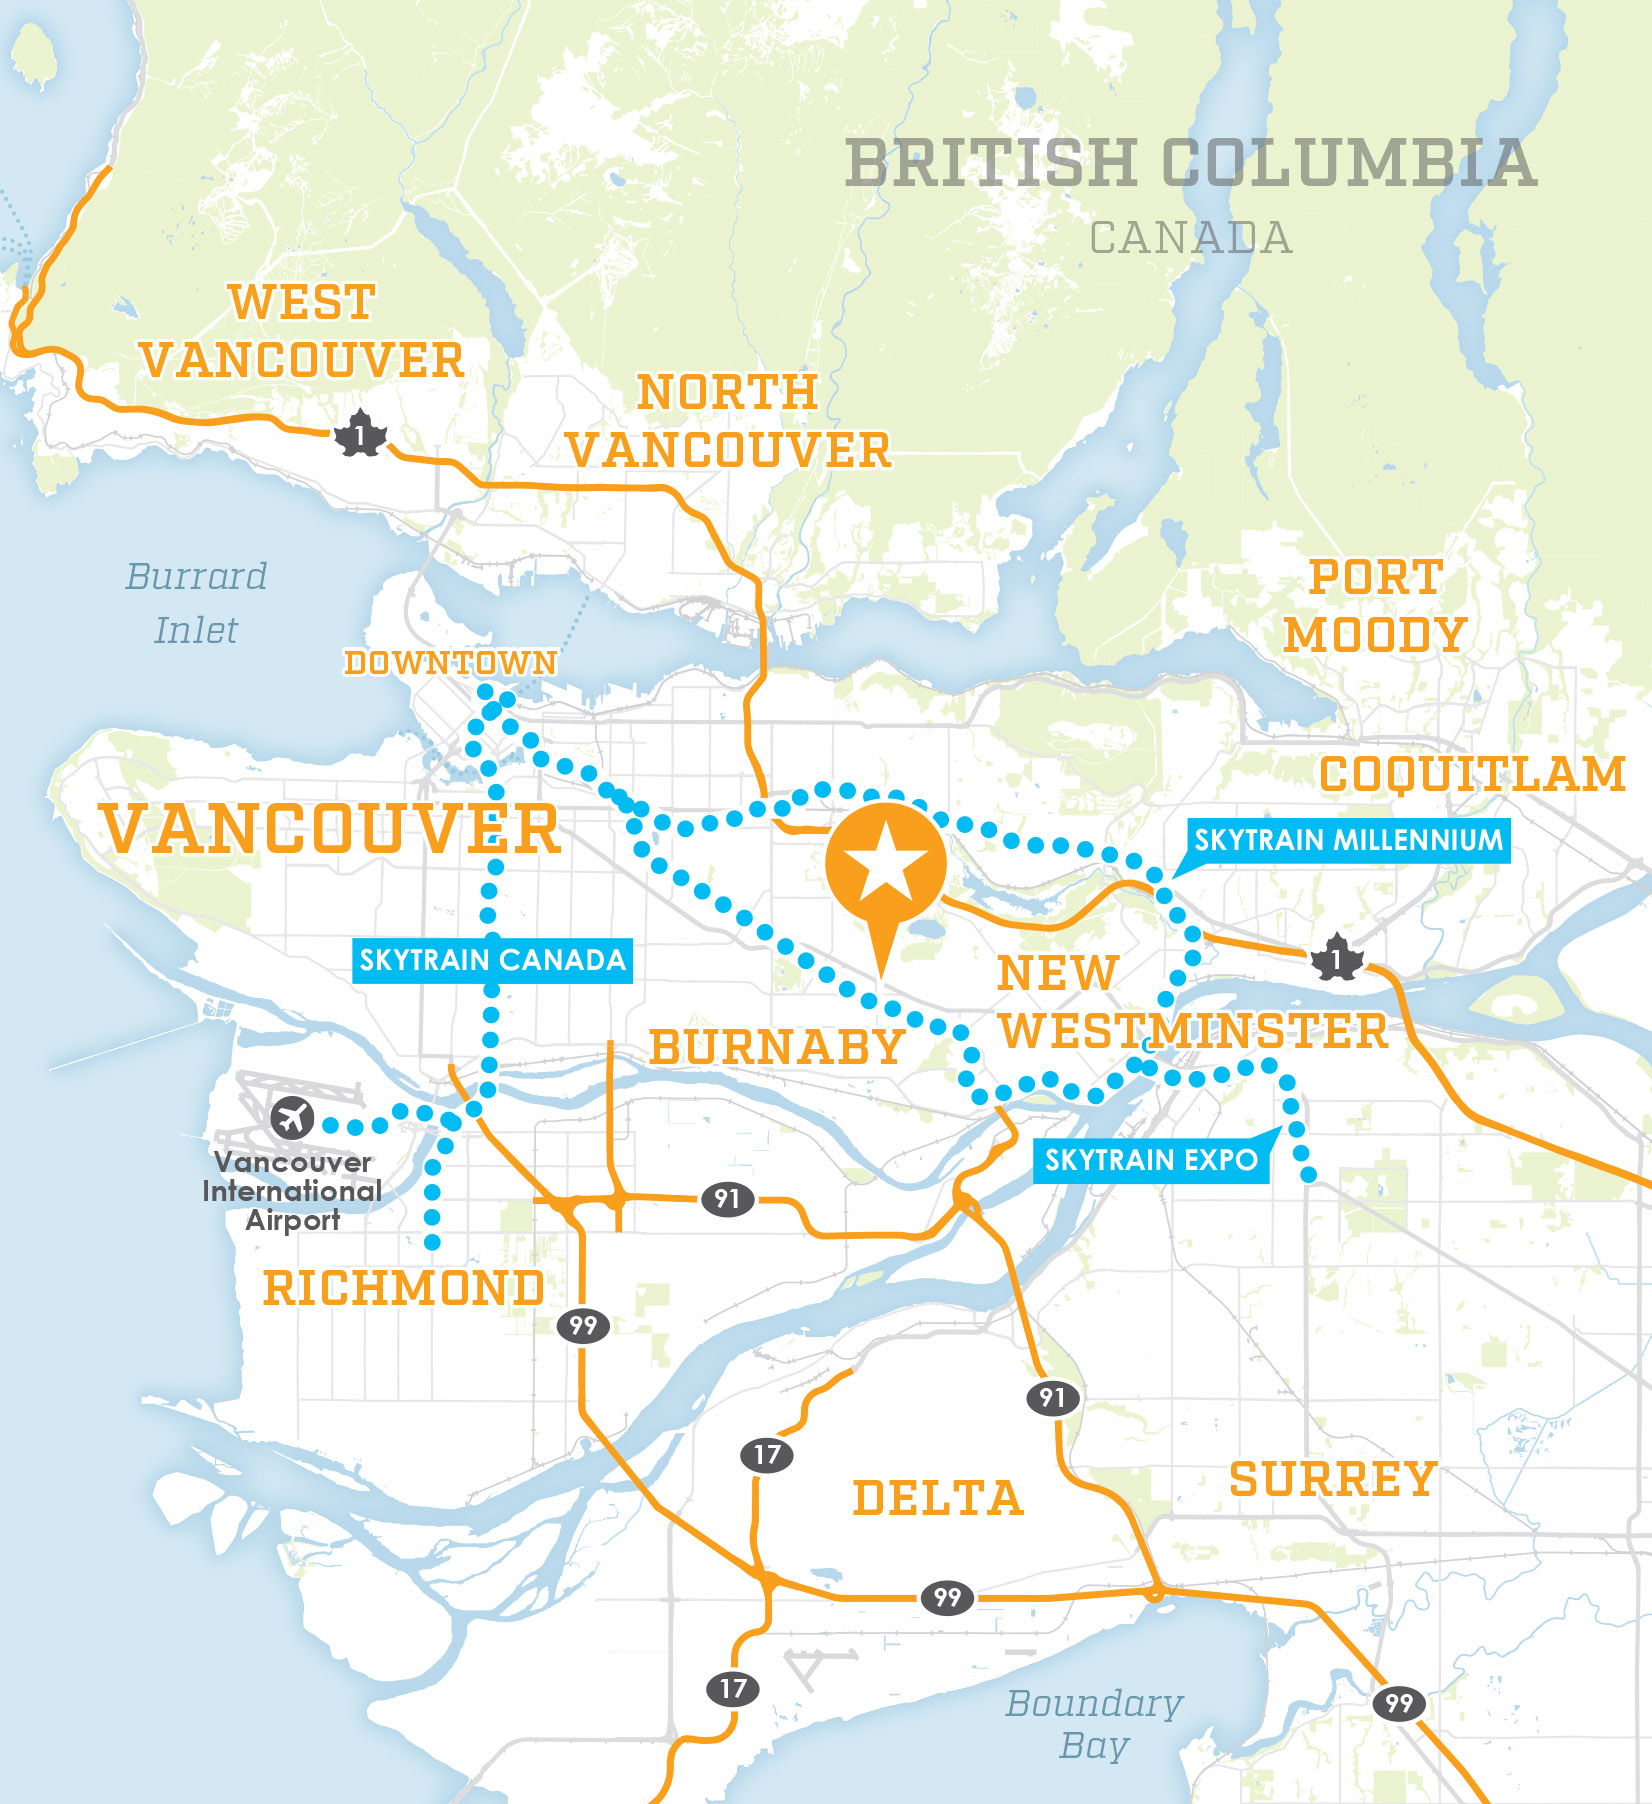 vancouver canada orange transit map.jpg